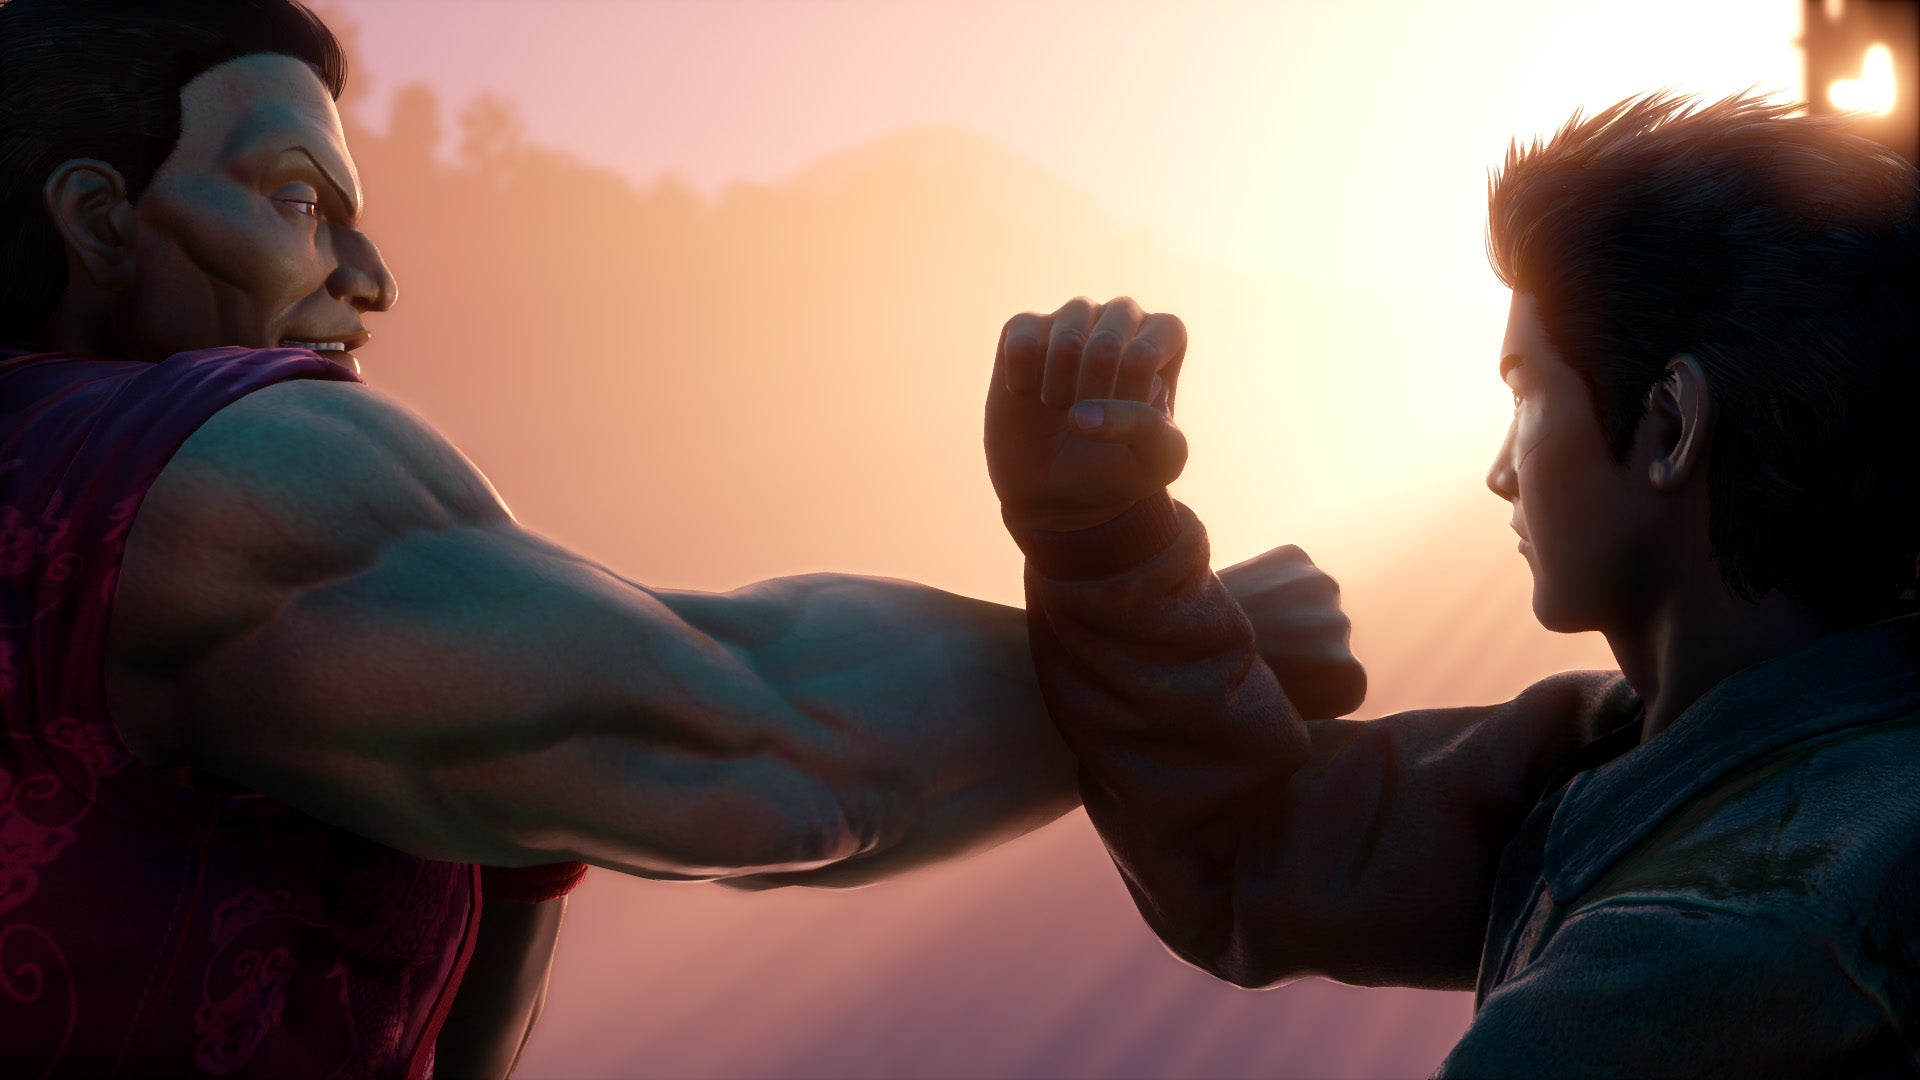 Shenmue III Developers Offer Refunds To Kickstarter Backers Angry About Epic Store Exclusivity